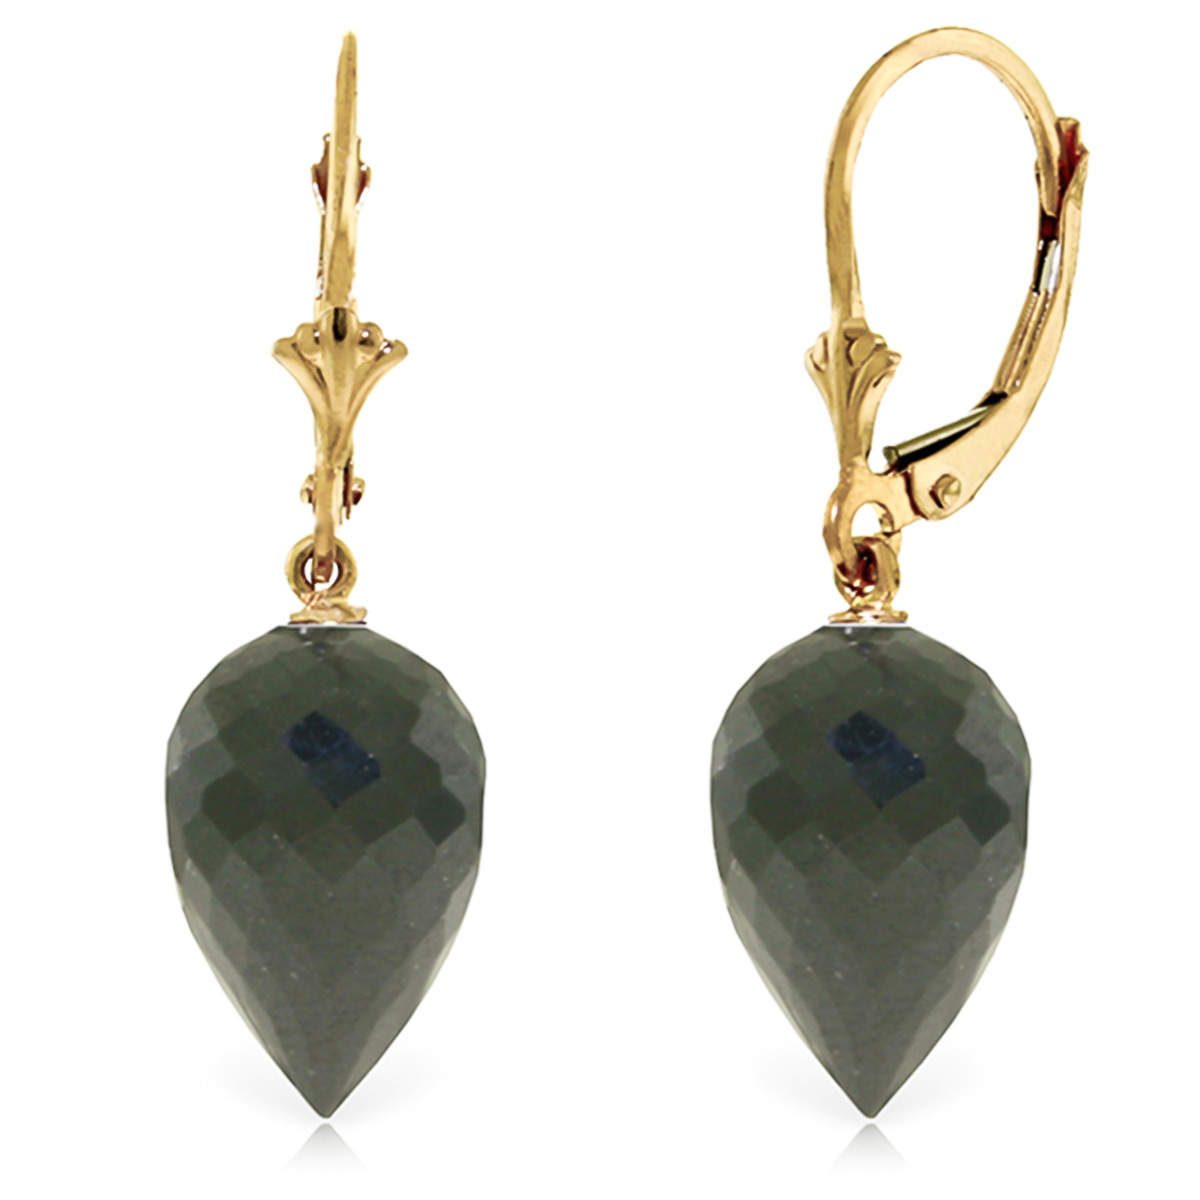 Black Spinel Briolette Drop Earrings 24.5ctw in 9ct Gold